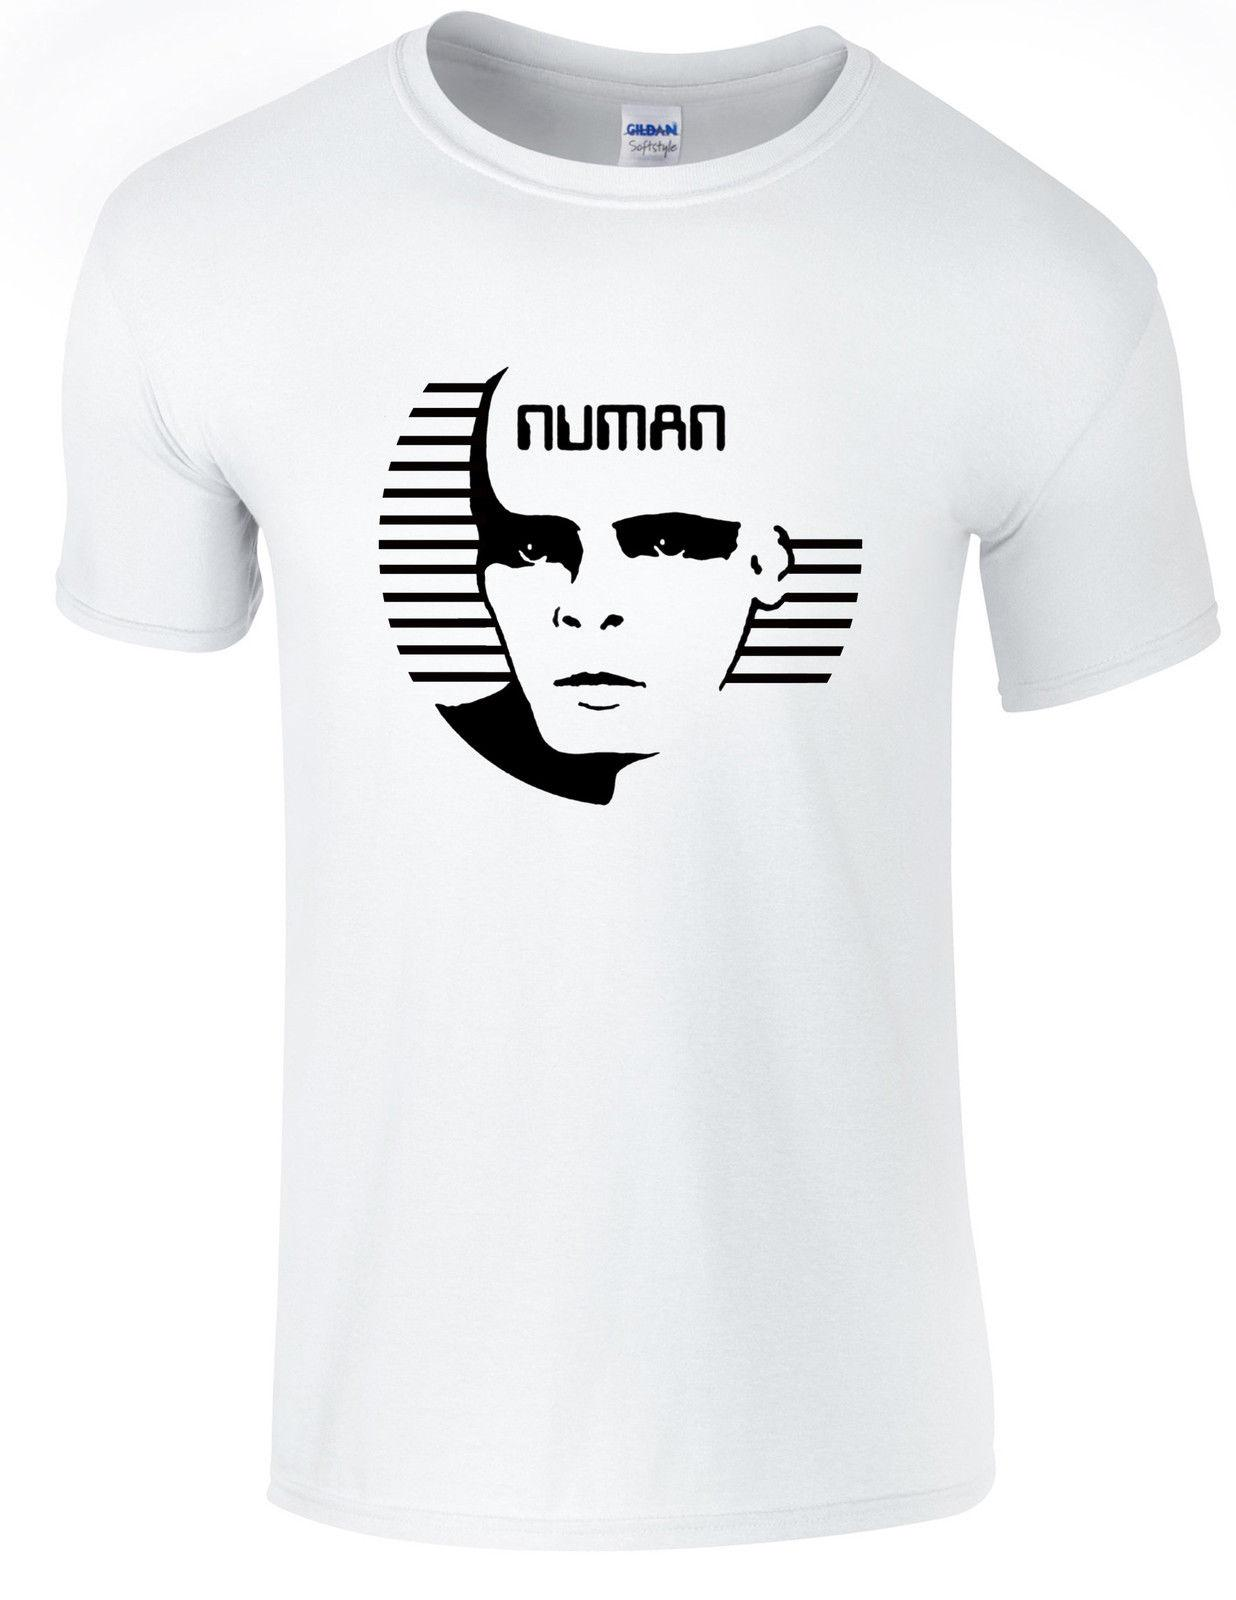 c8295ab6f73f3 Gary numan,tubeway army tribute T-shirt,all sizes available Funny free  shipping Unisex Casual